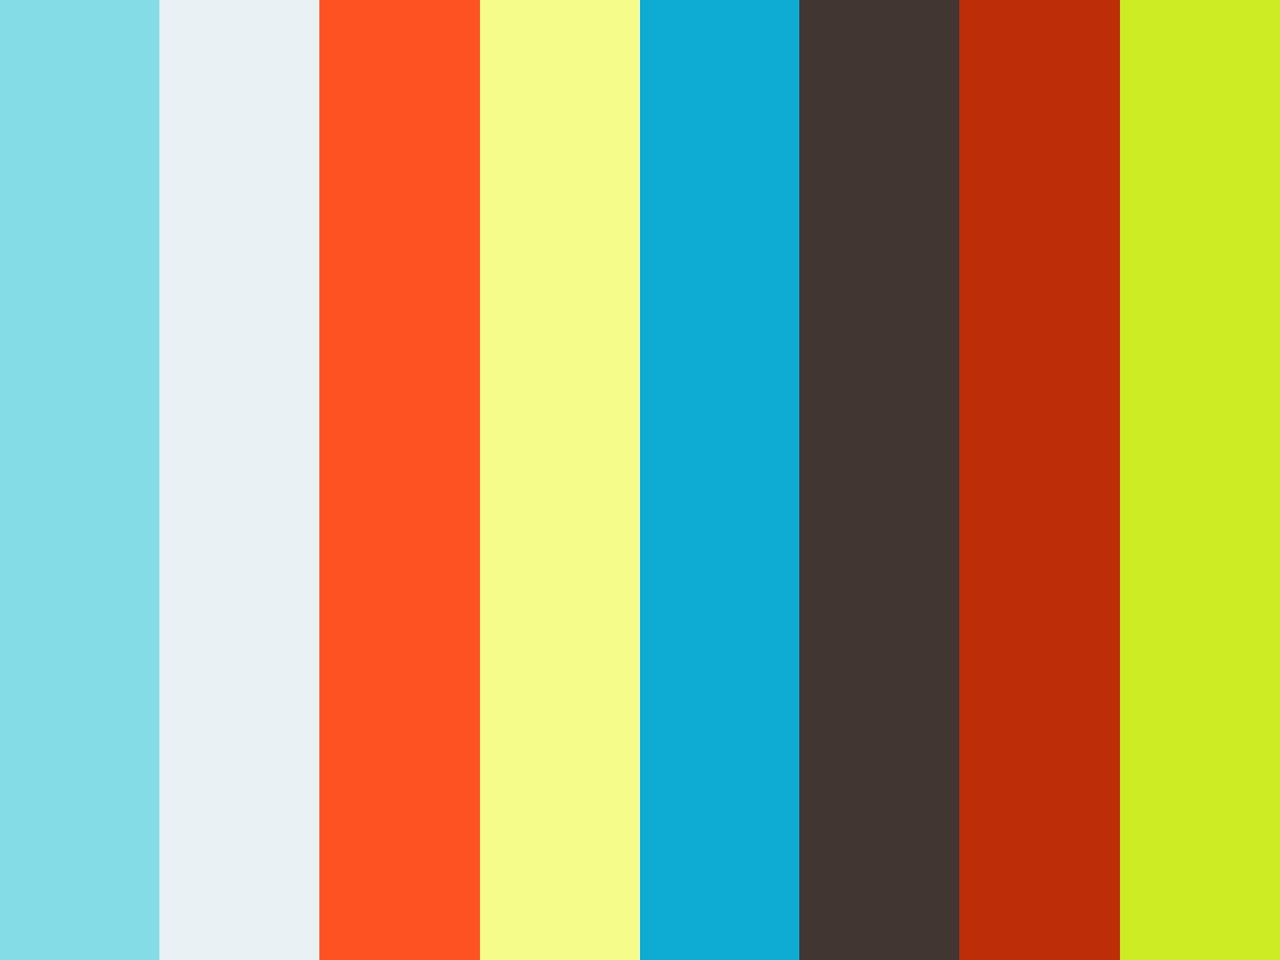 offscreen corner pocket